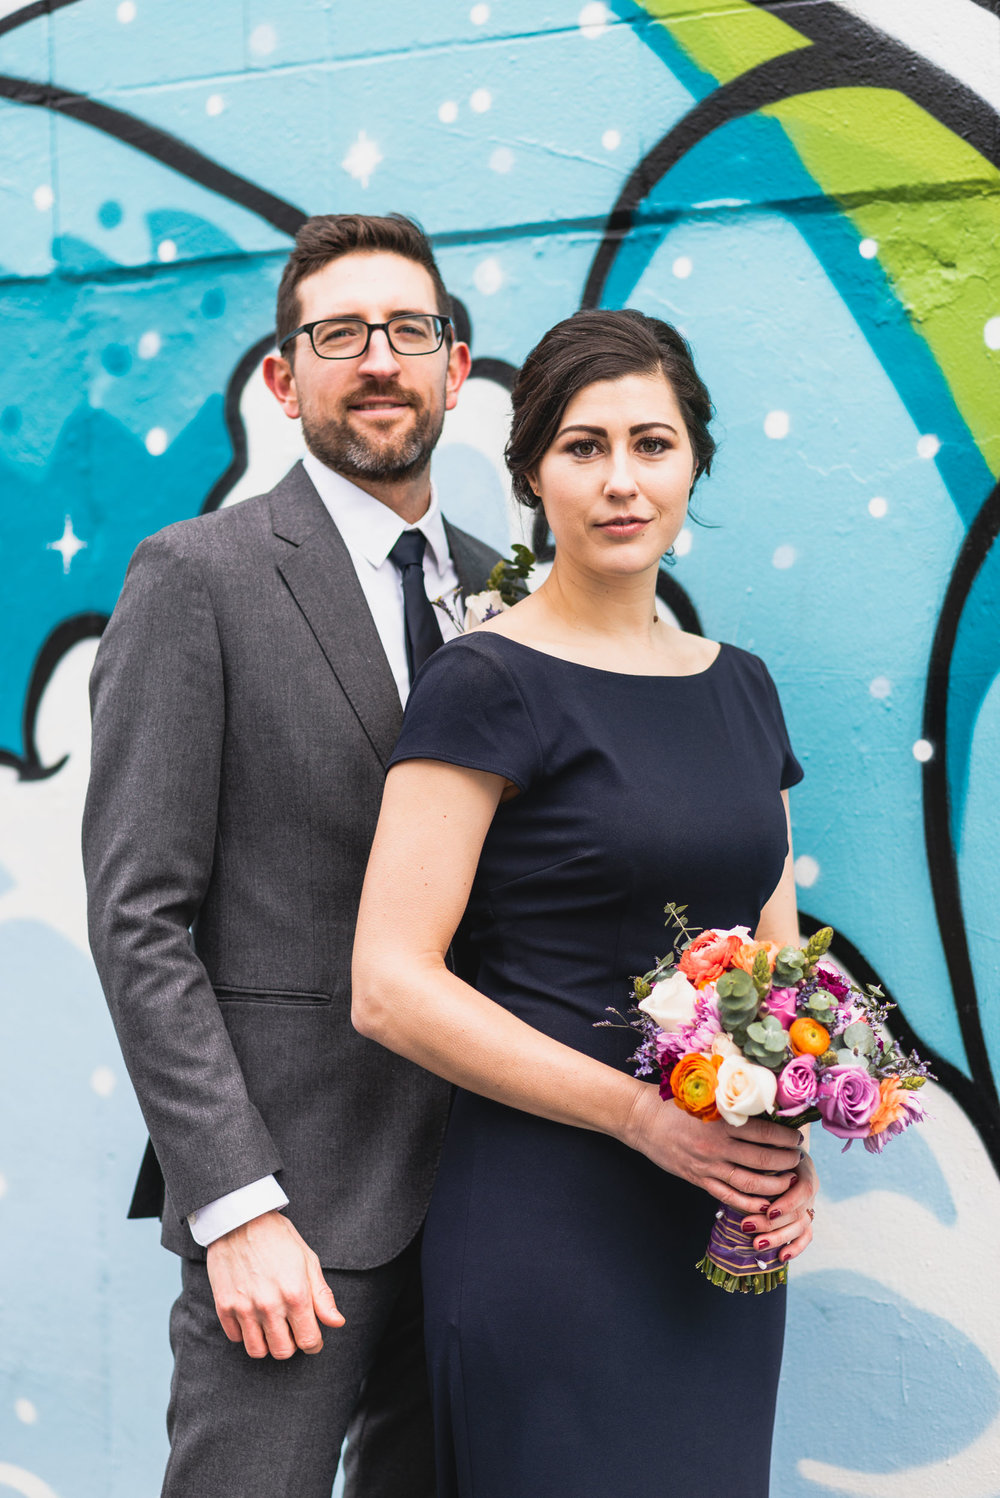 Bride and Groom at mural